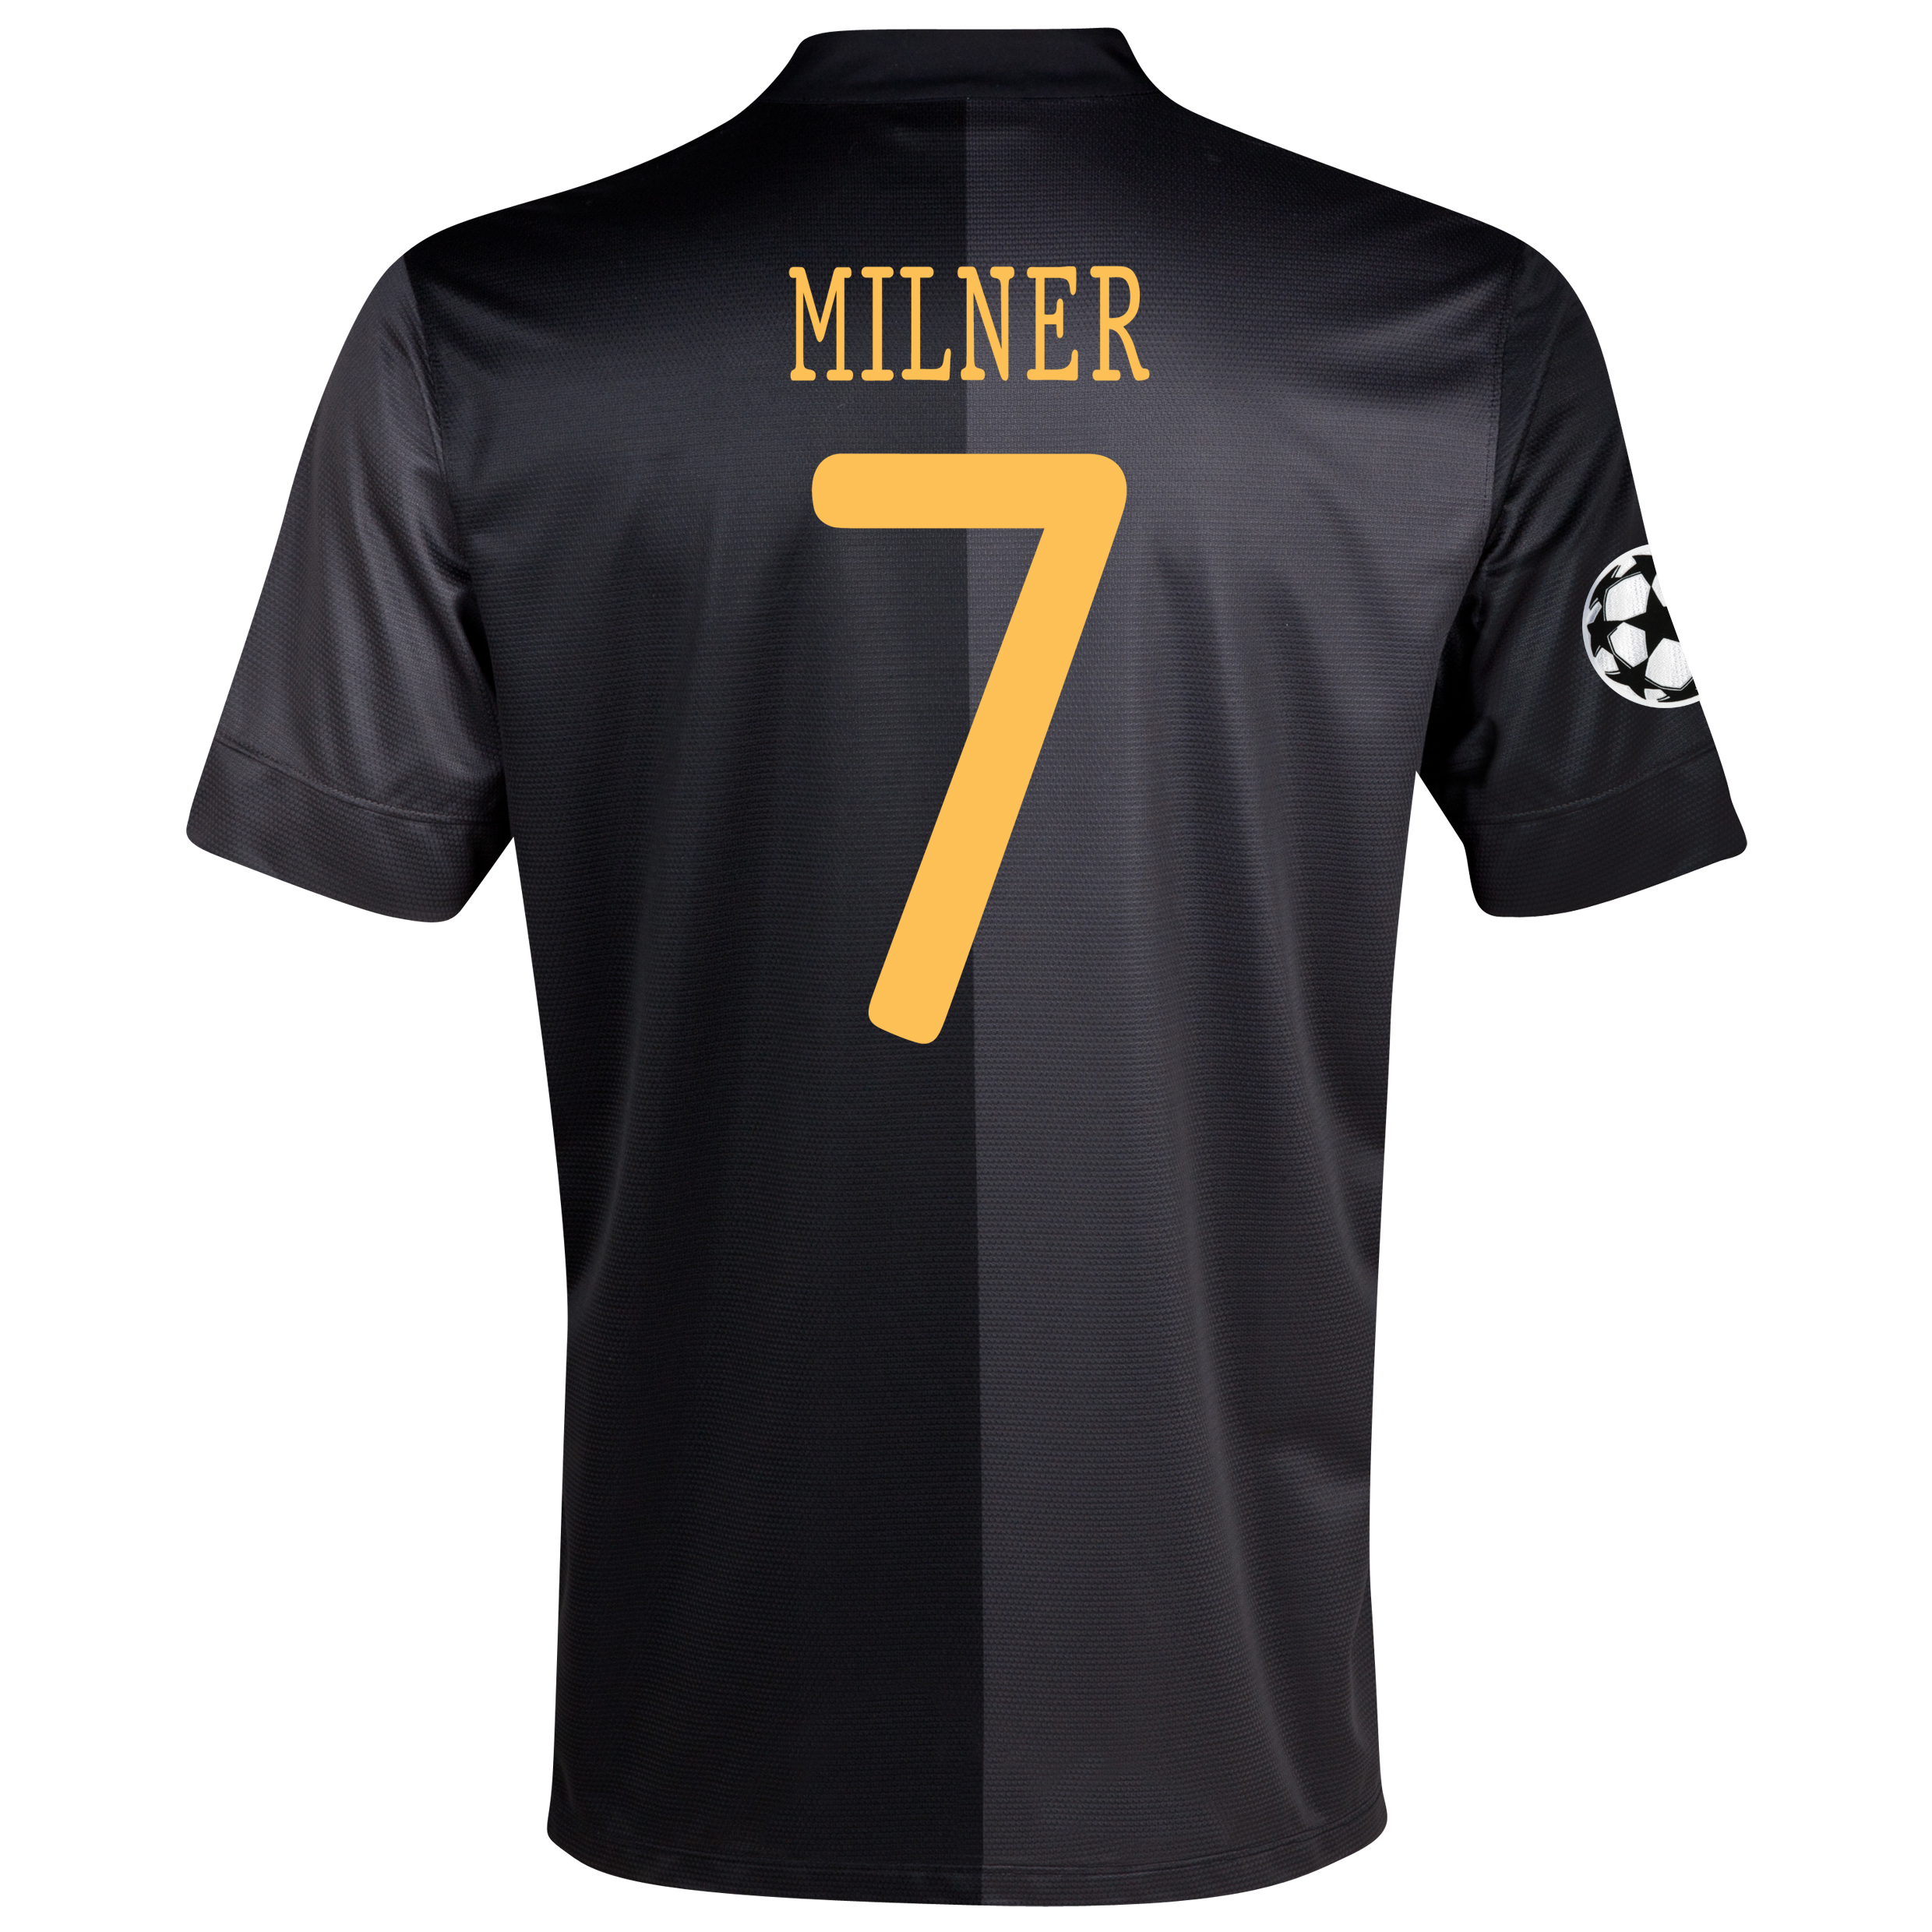 Manchester City UEFA Champions League Away Shirt 2013/14 with Milner 7 printing